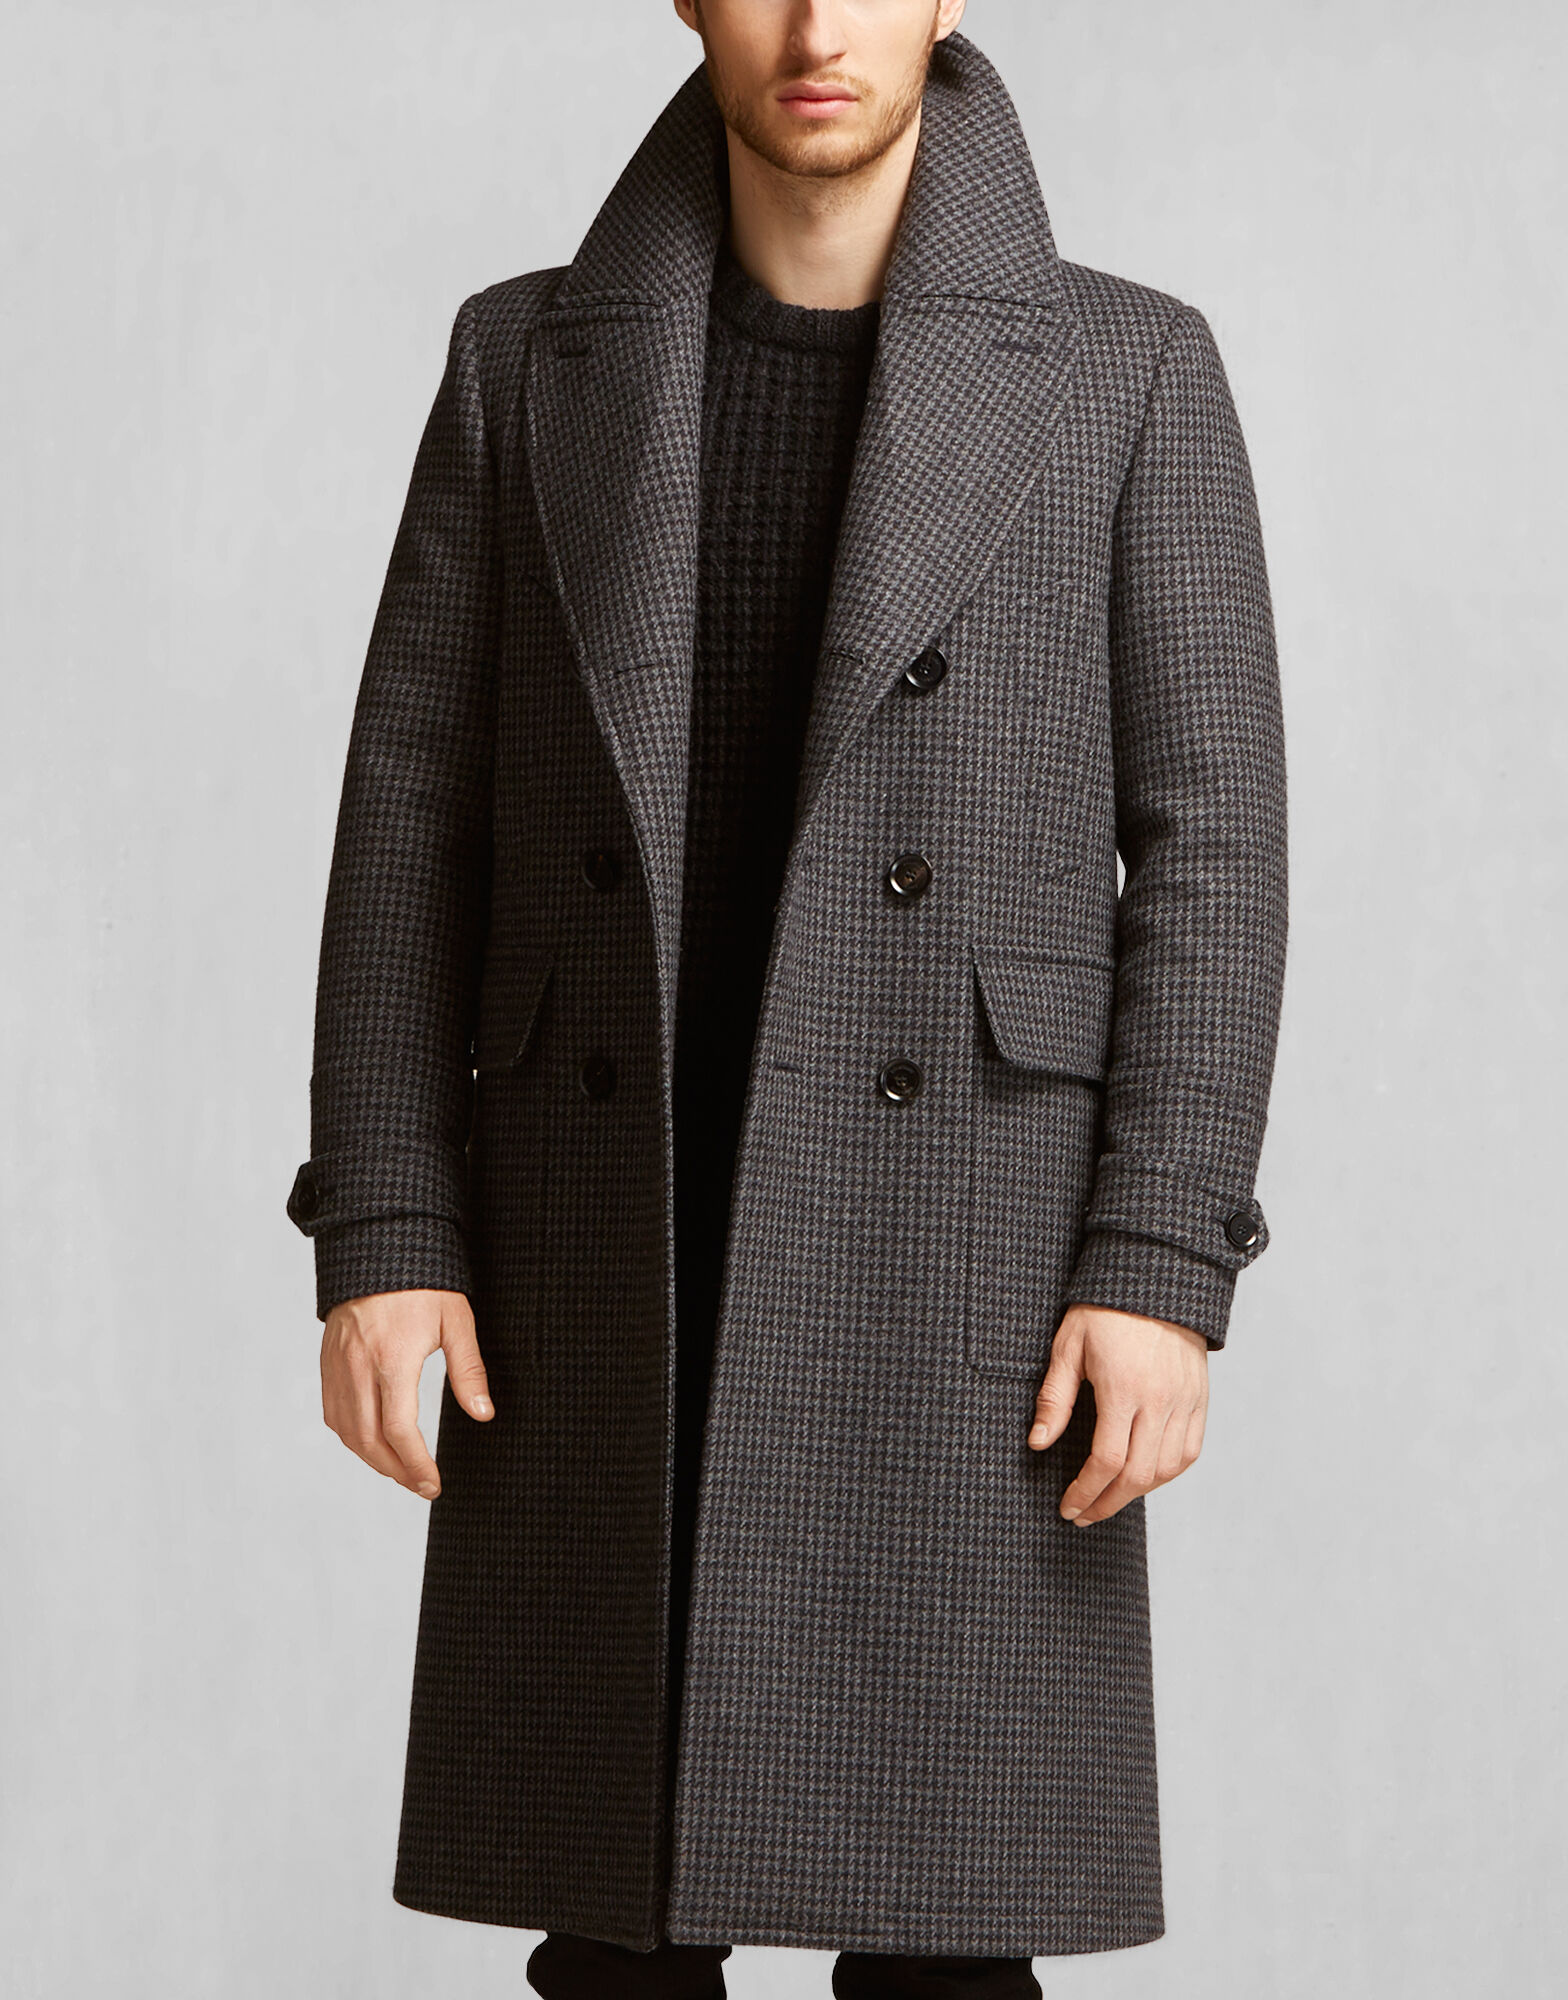 Black Wool Coats - Belstaff